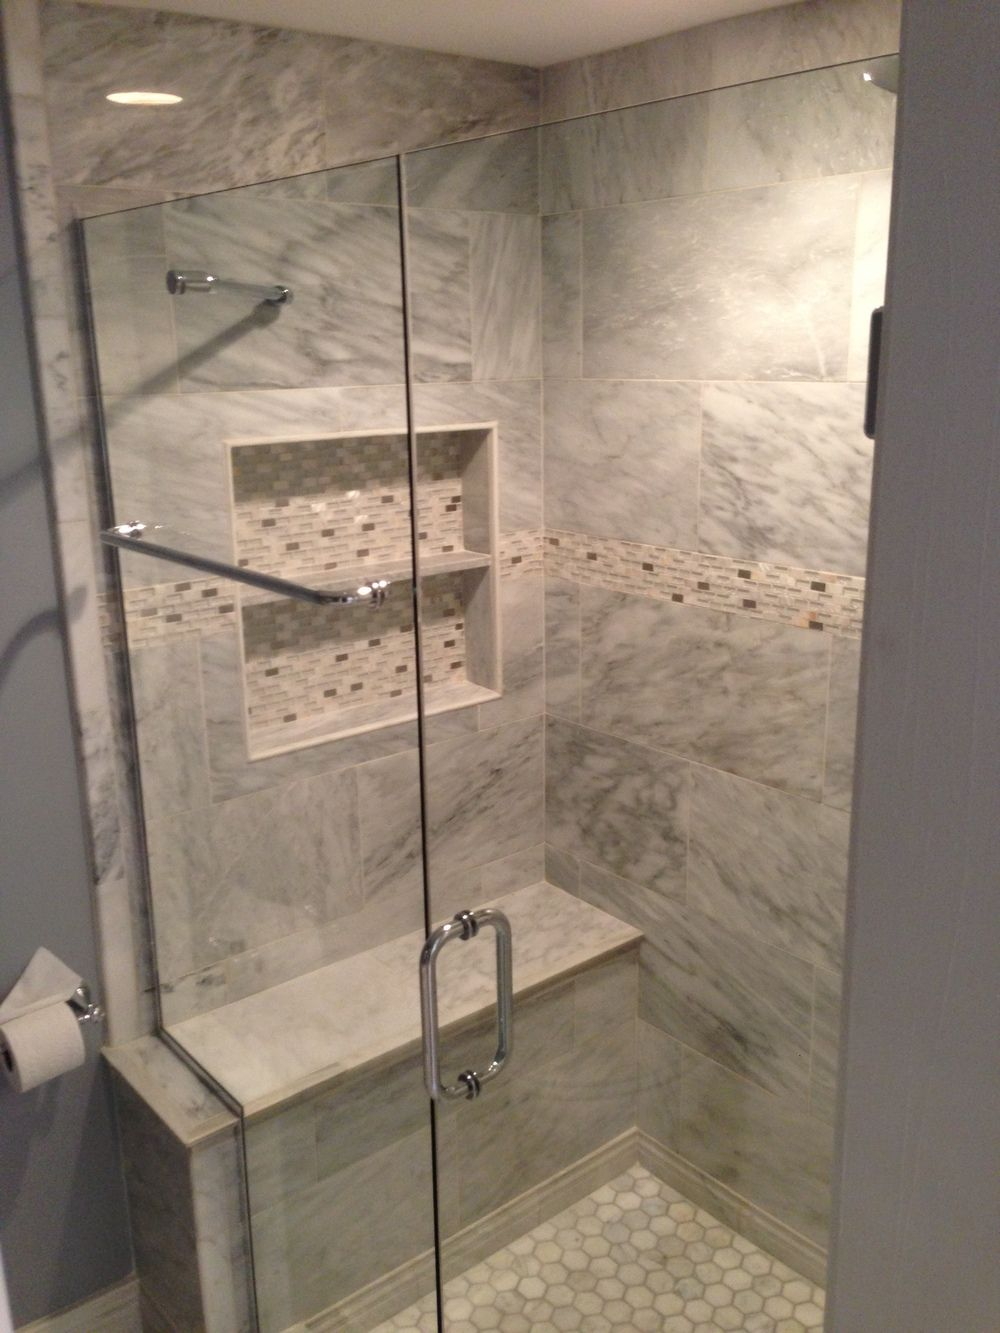 Bathroom shower doors frameless - Glass Shower Enclosures